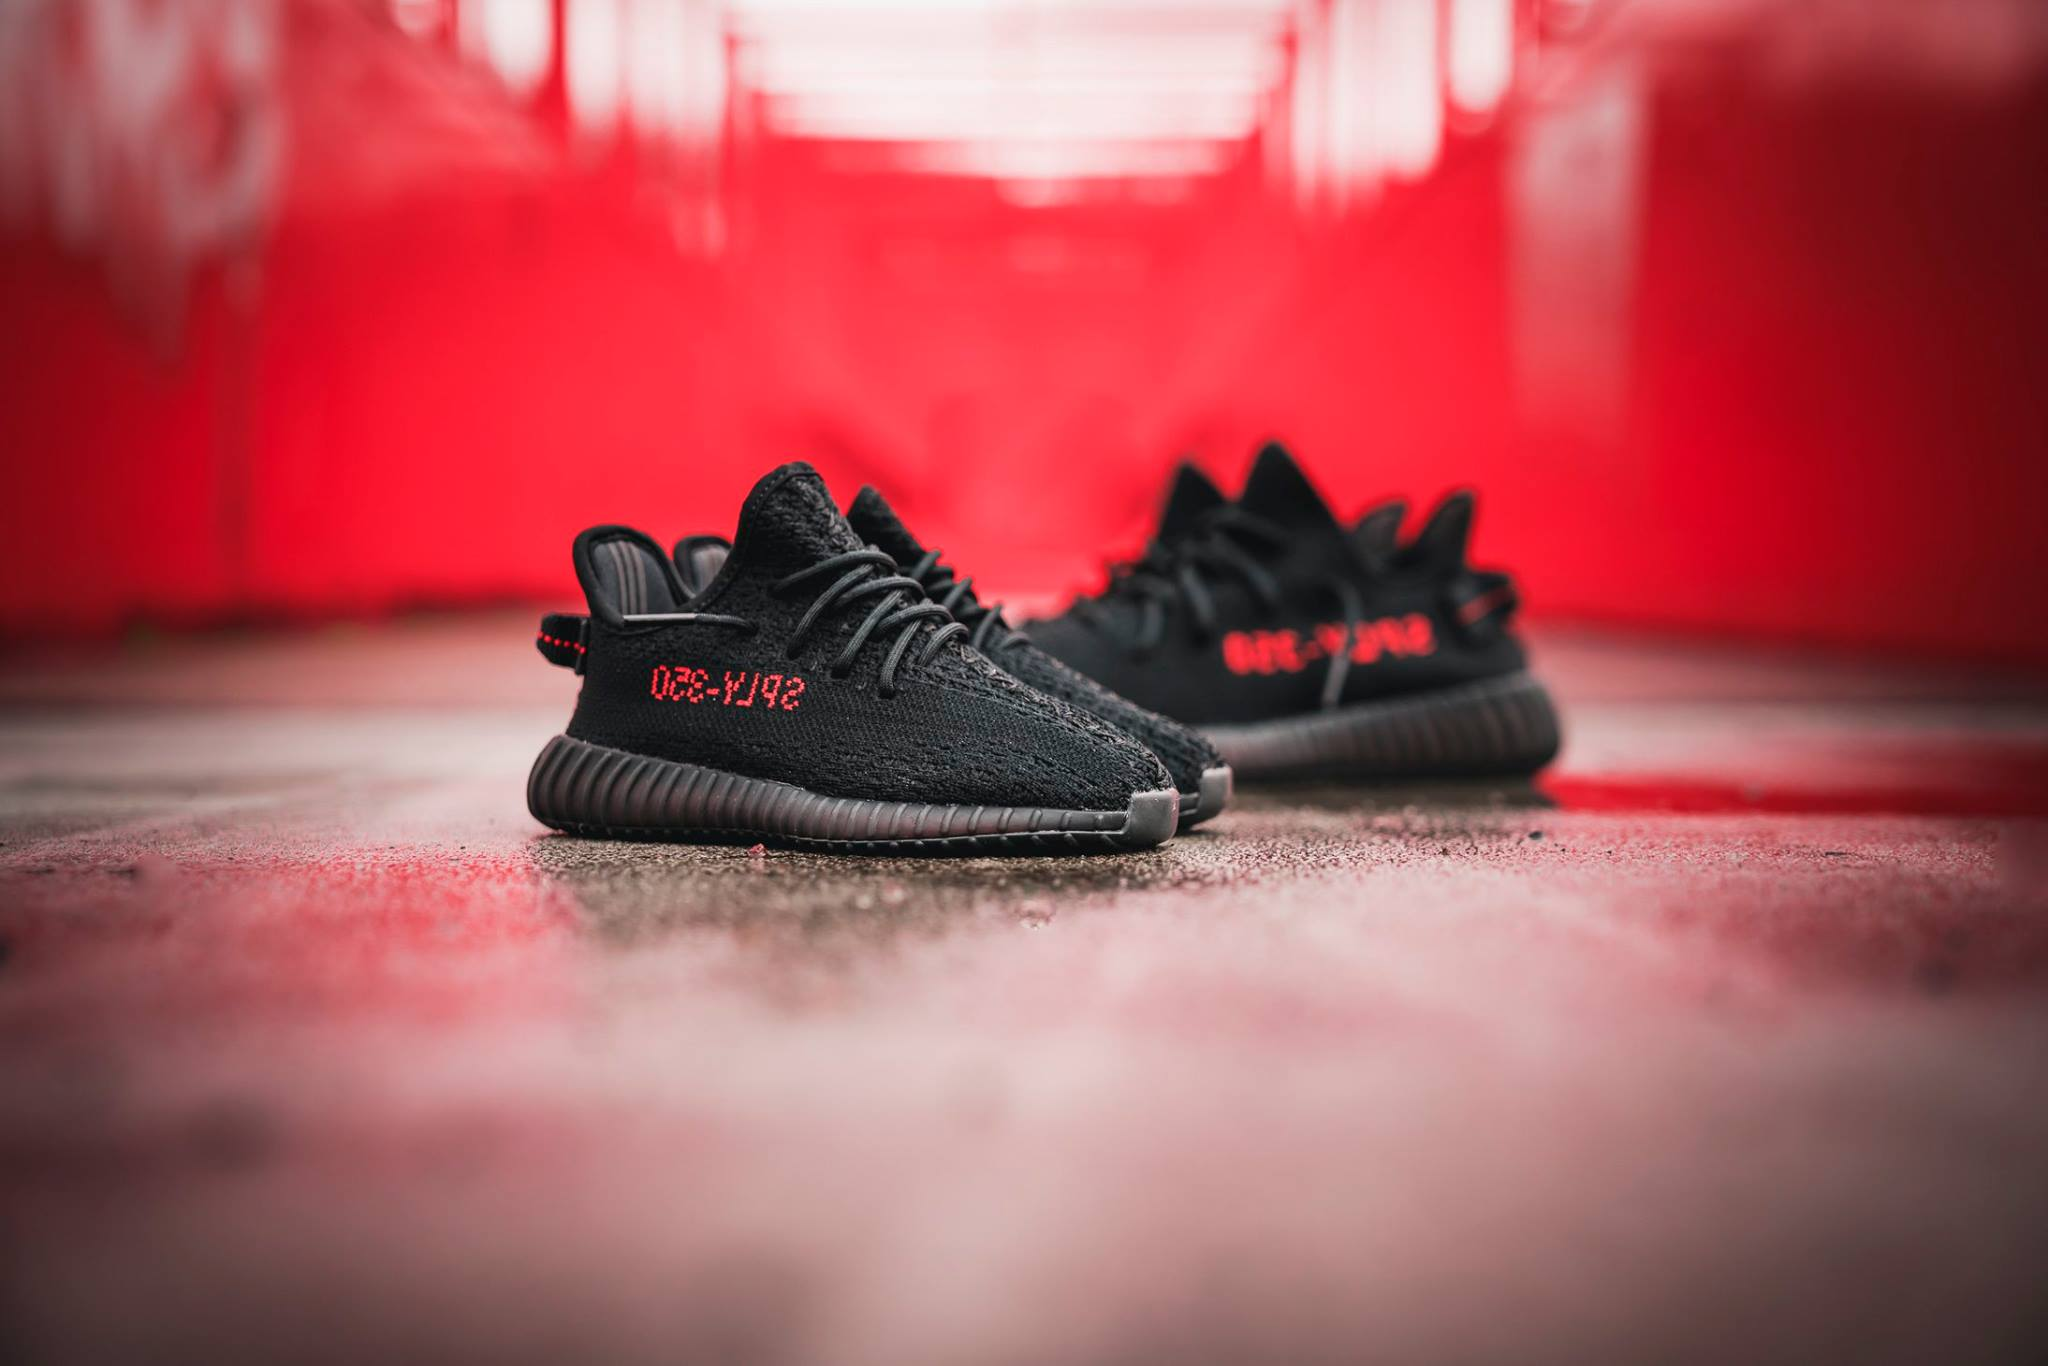 a500b3720b191 Factory Quality 350 Boost Sneakers Pirate Black BB5350 Size 4 13. Cheat  environmental protection yeezy boost 350 V2   ...